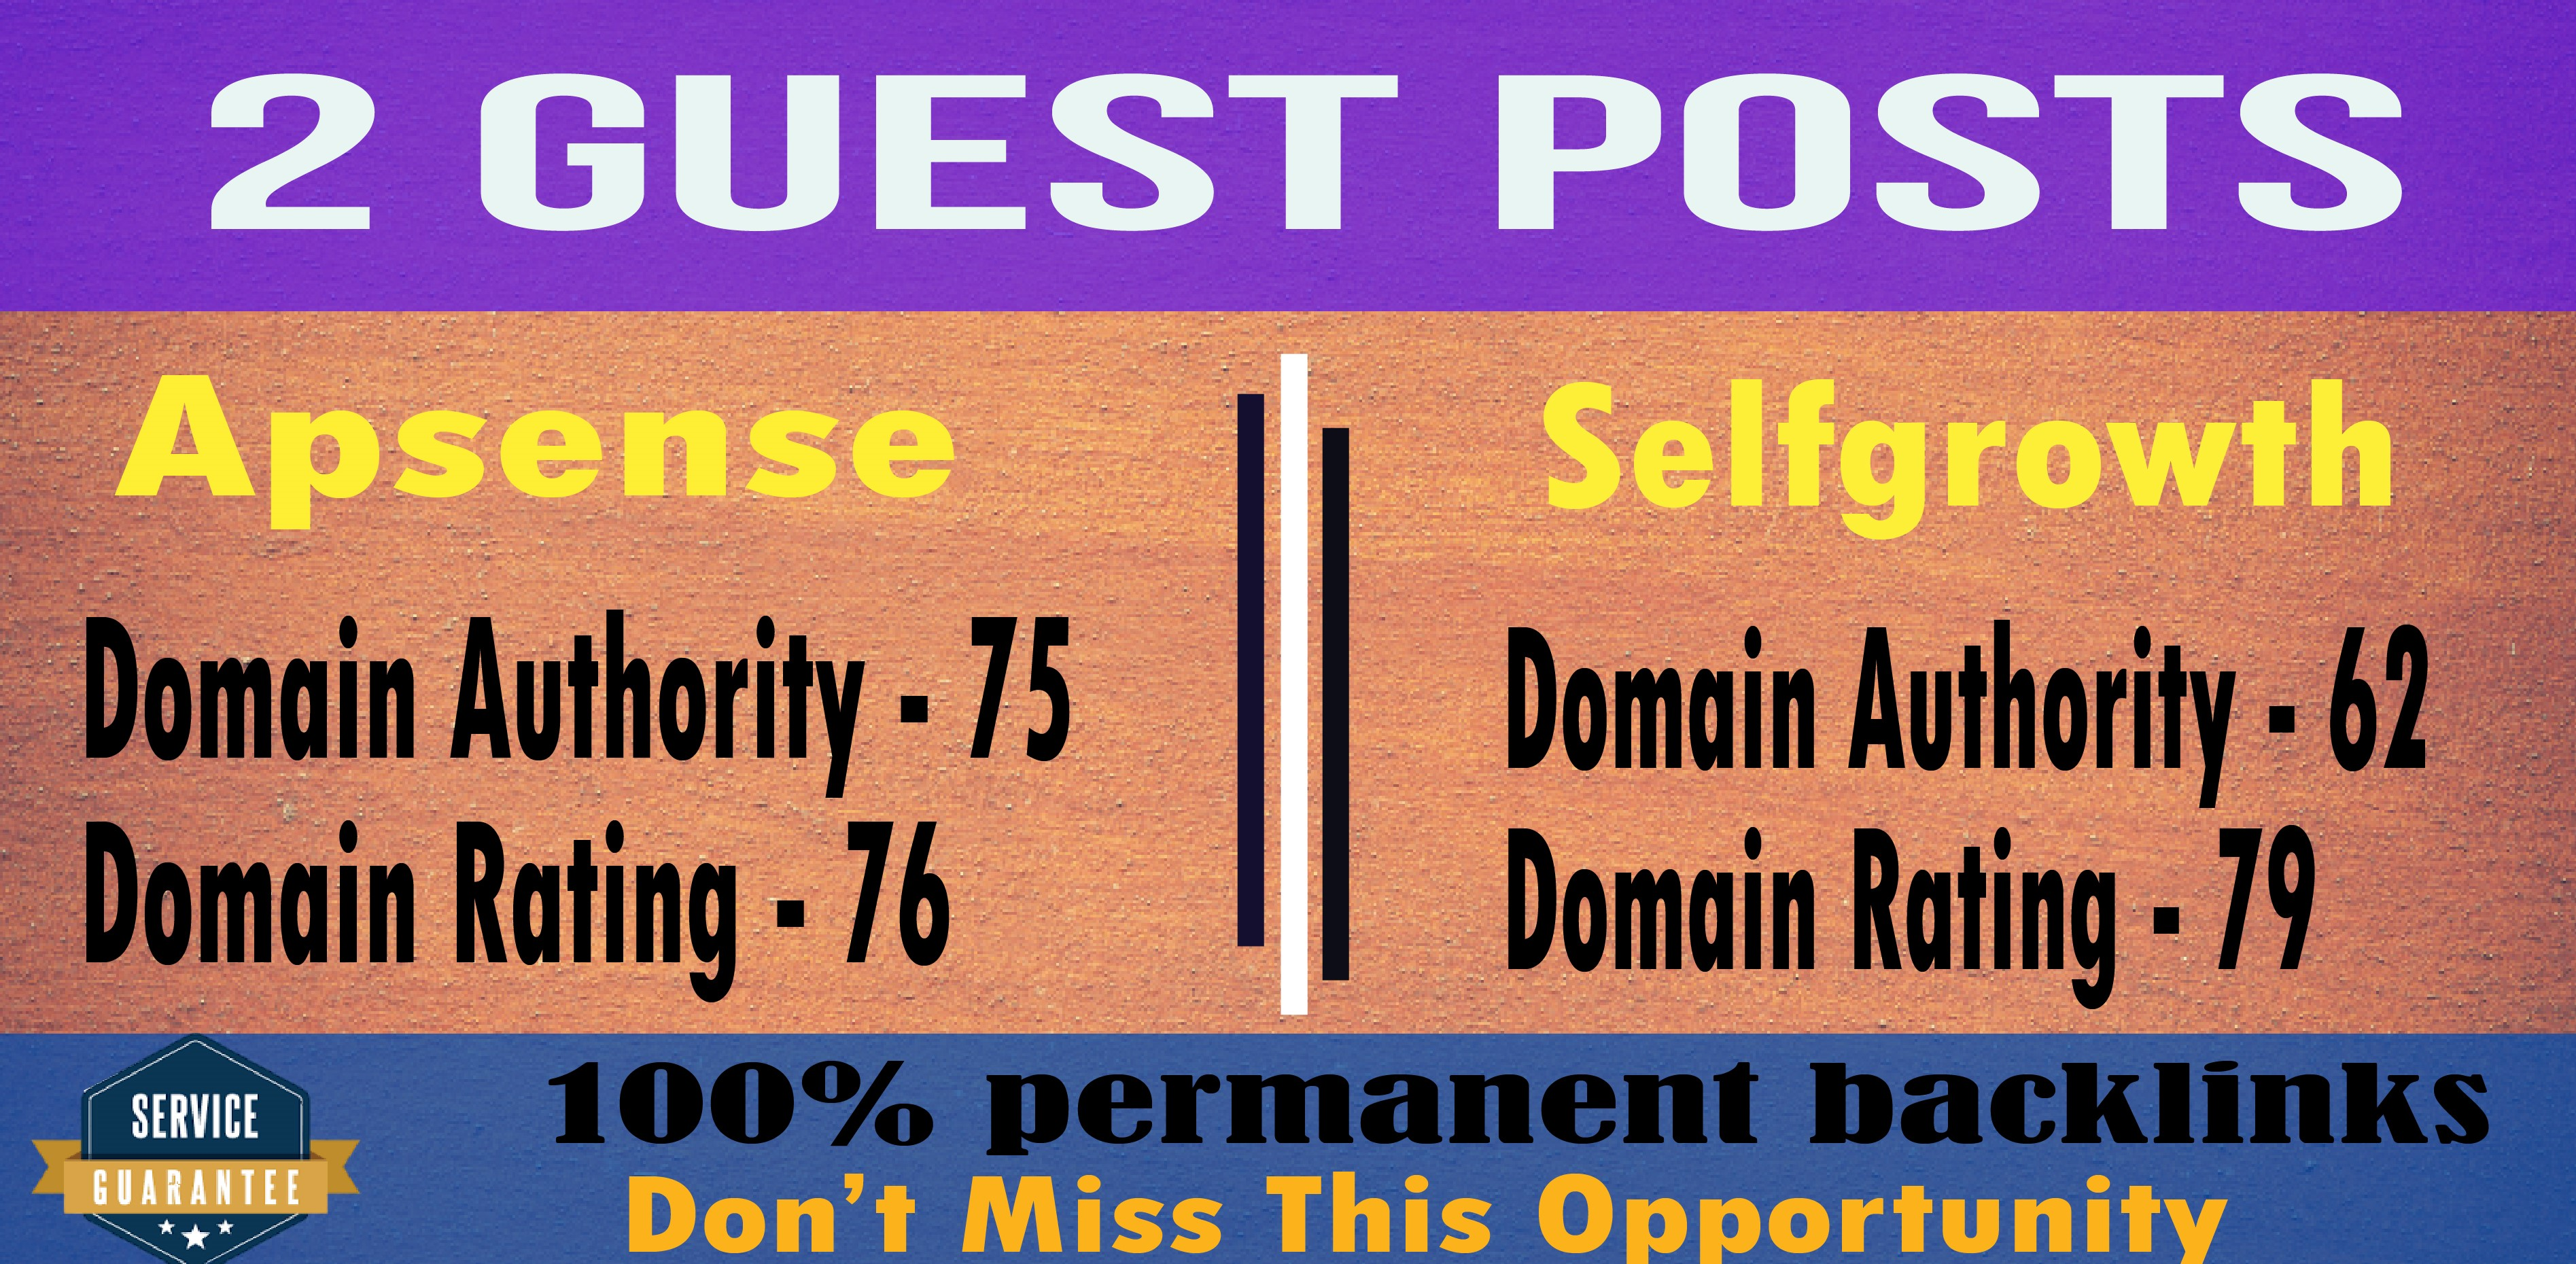 Publish Your Article On Apsense and Selfgrowth With Dofollow Link